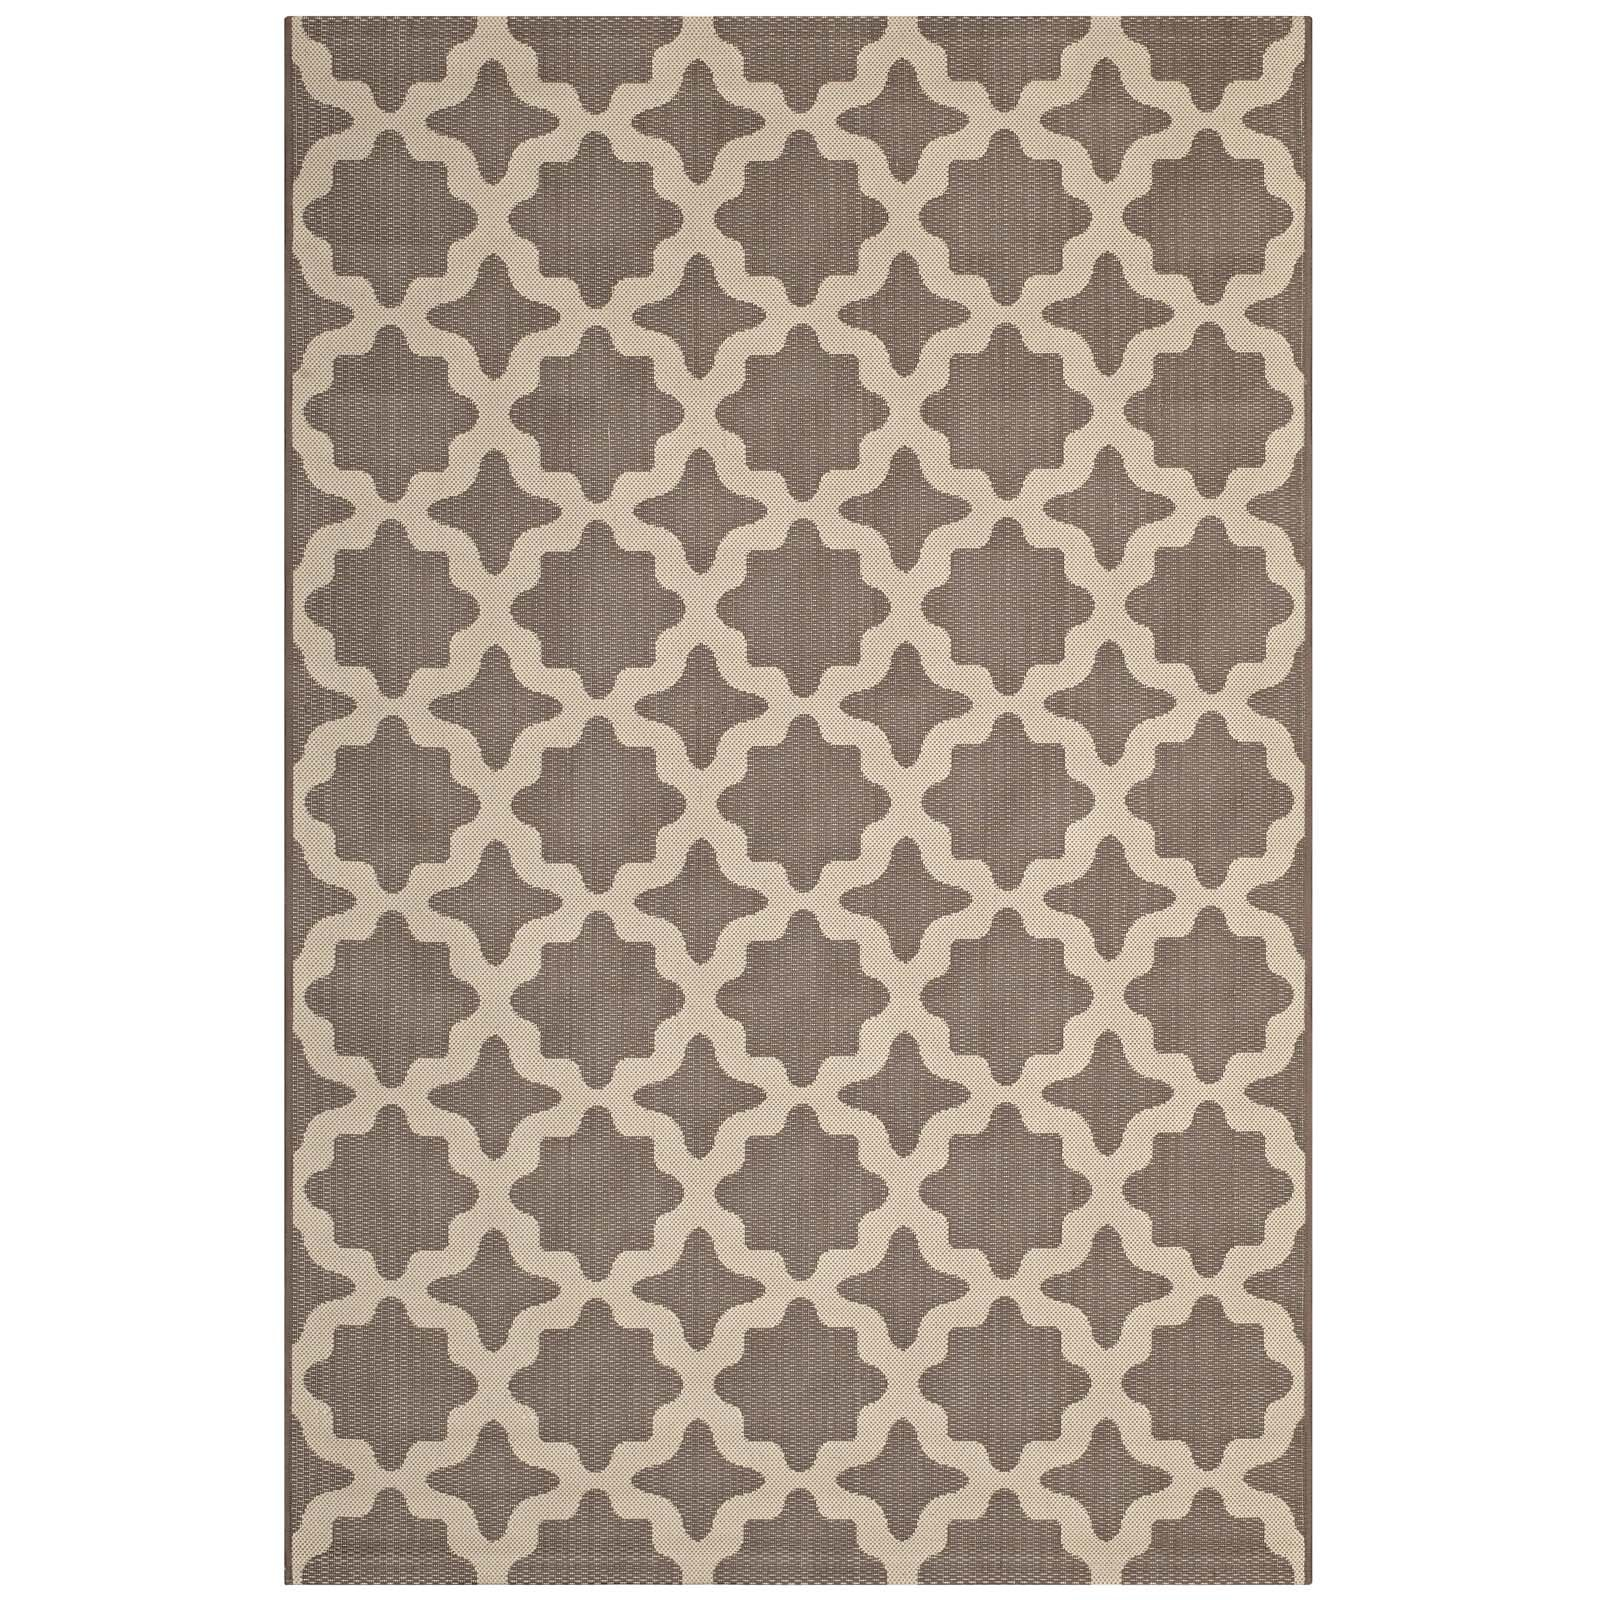 Modway R-1139A-810 Cerelia Moroccan Trellis 8x10 Indoor and Outdoor Area Rug, Twin, Beige and Light Green by Modway